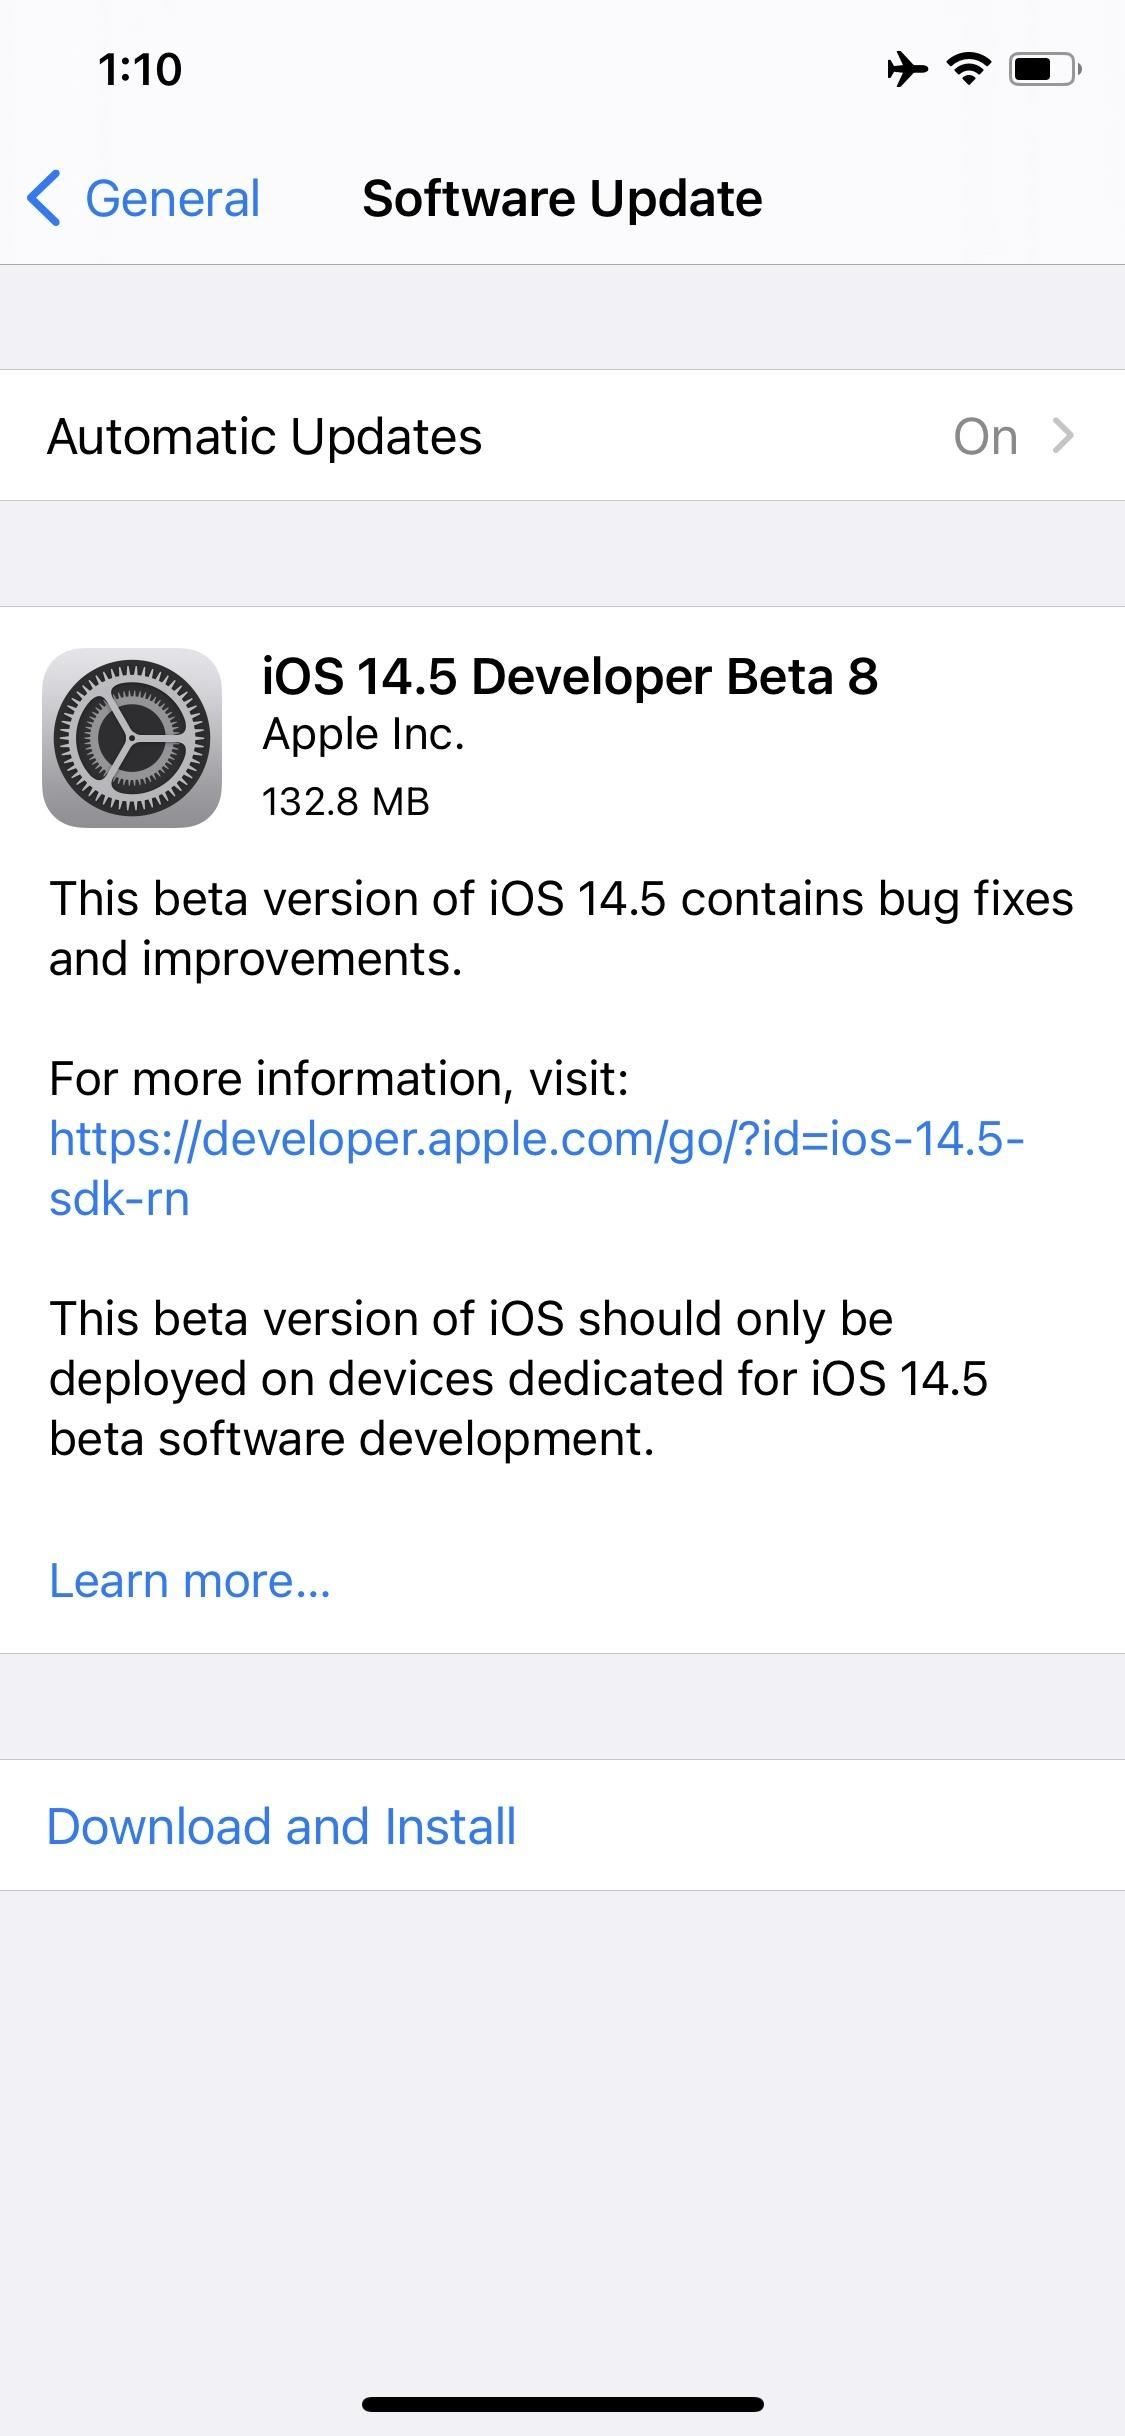 Apple Releases iOS 14.5 Beta 8 to Developers